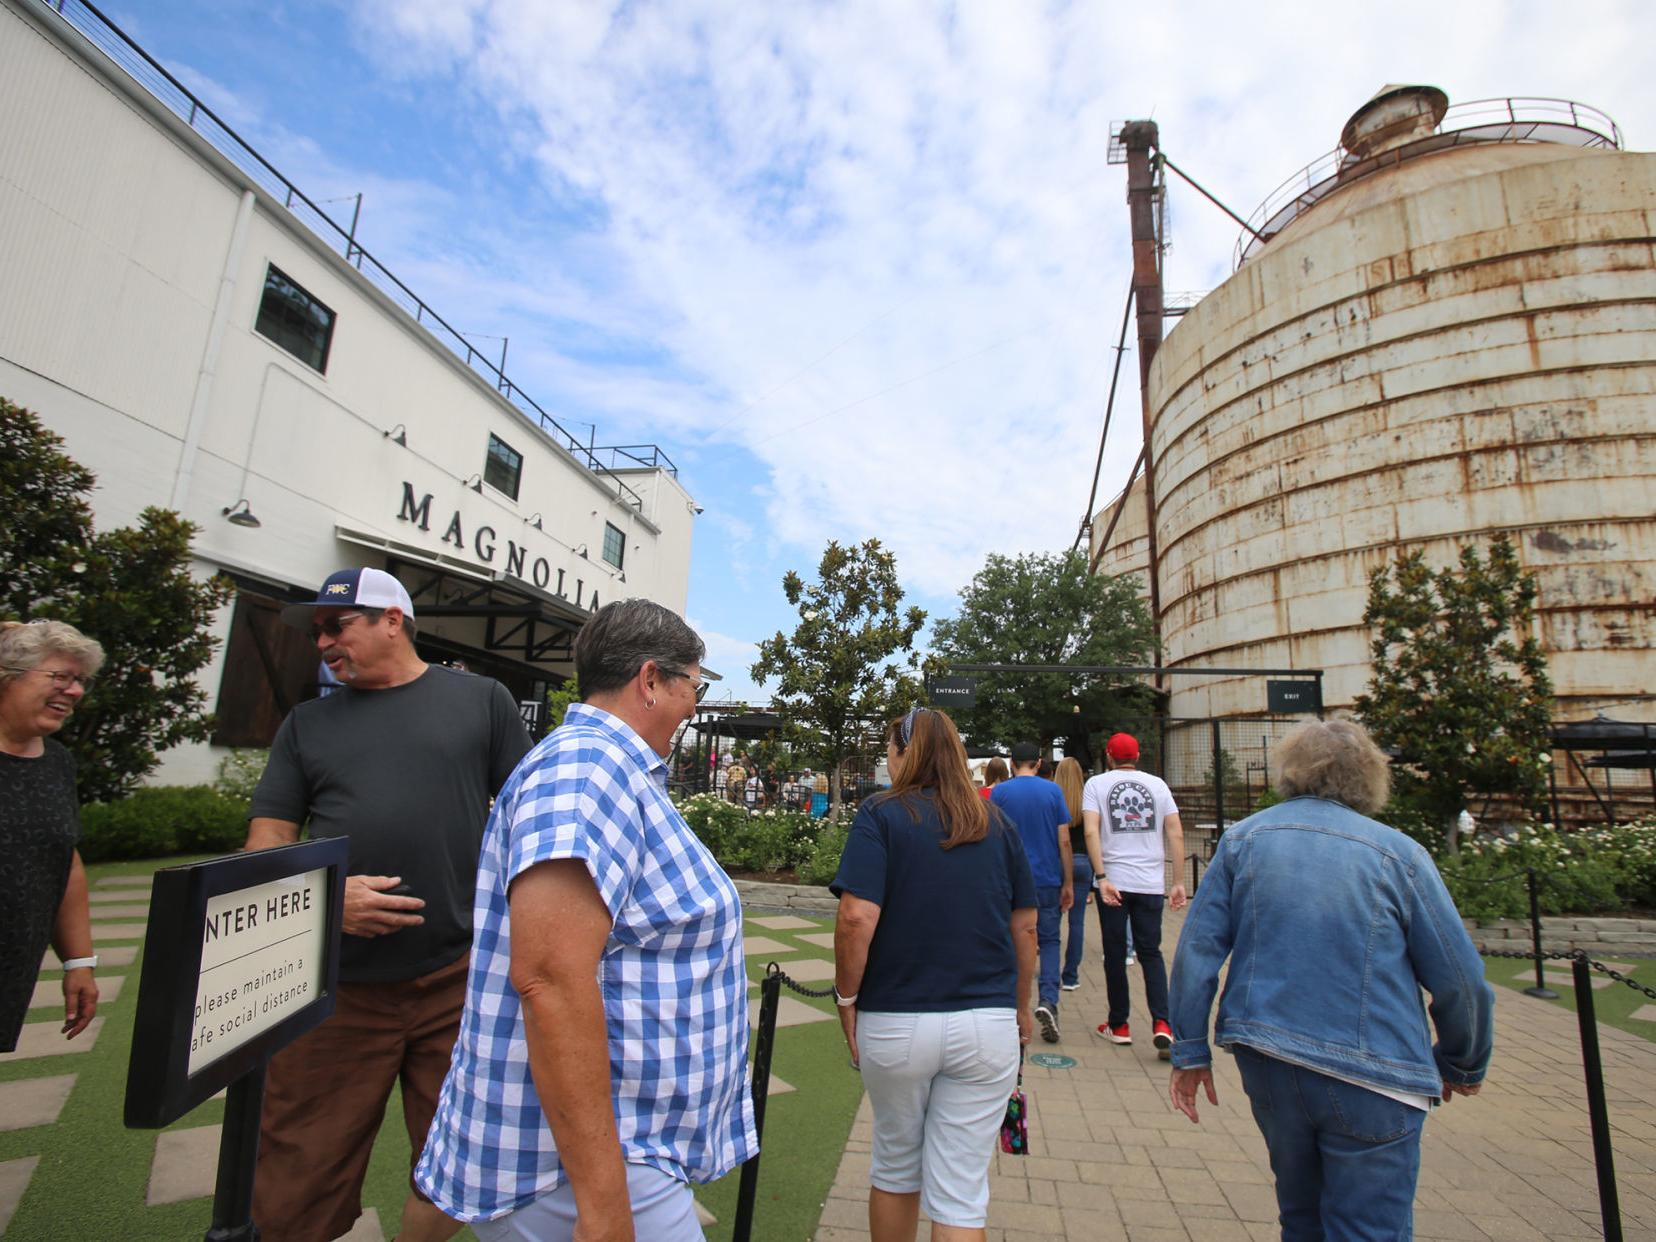 Ripple Effect Expected As Magnolia Silos Reopens Local News Wacotrib Com